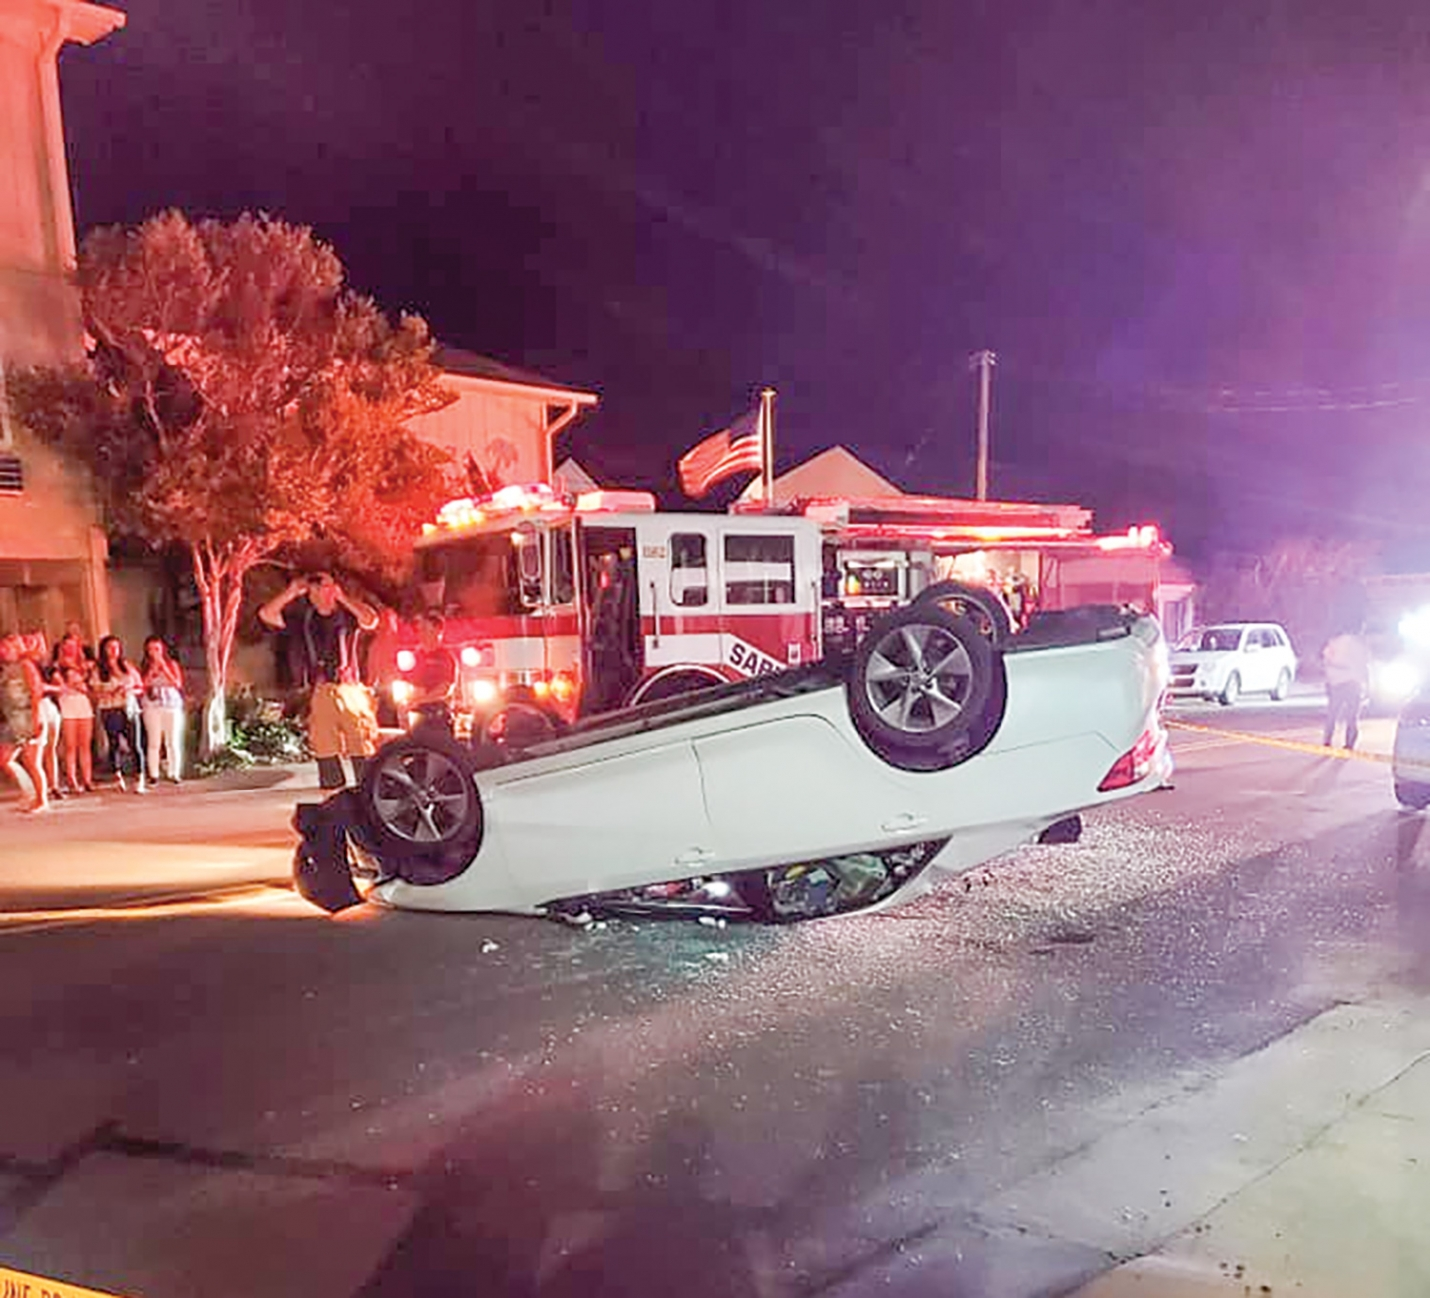 The Kure Beach Police Department is currently investigating a two vehicle auto accident that occurred Friday night, July 17th resulting in a passenger vehicle overturning in the middle of Fort Fisher Blvd. (Photo: Terri L. Chabot  via Facebook).